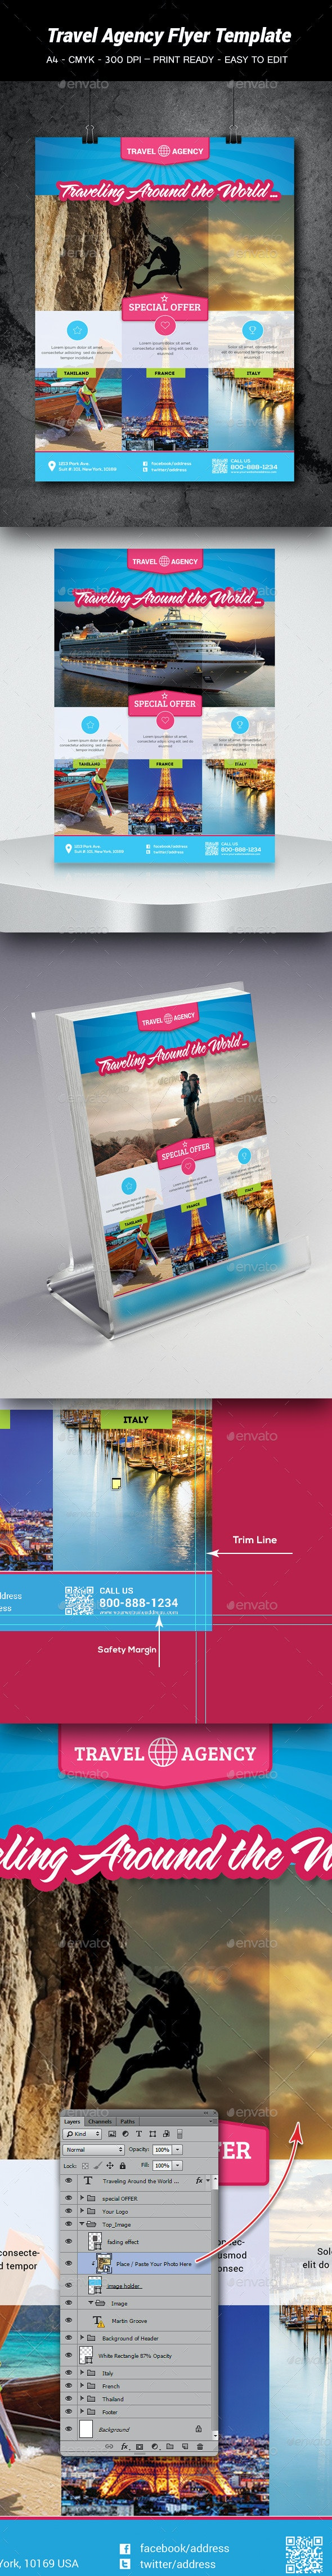 Travel Agency Flyer Template - Holidays Events